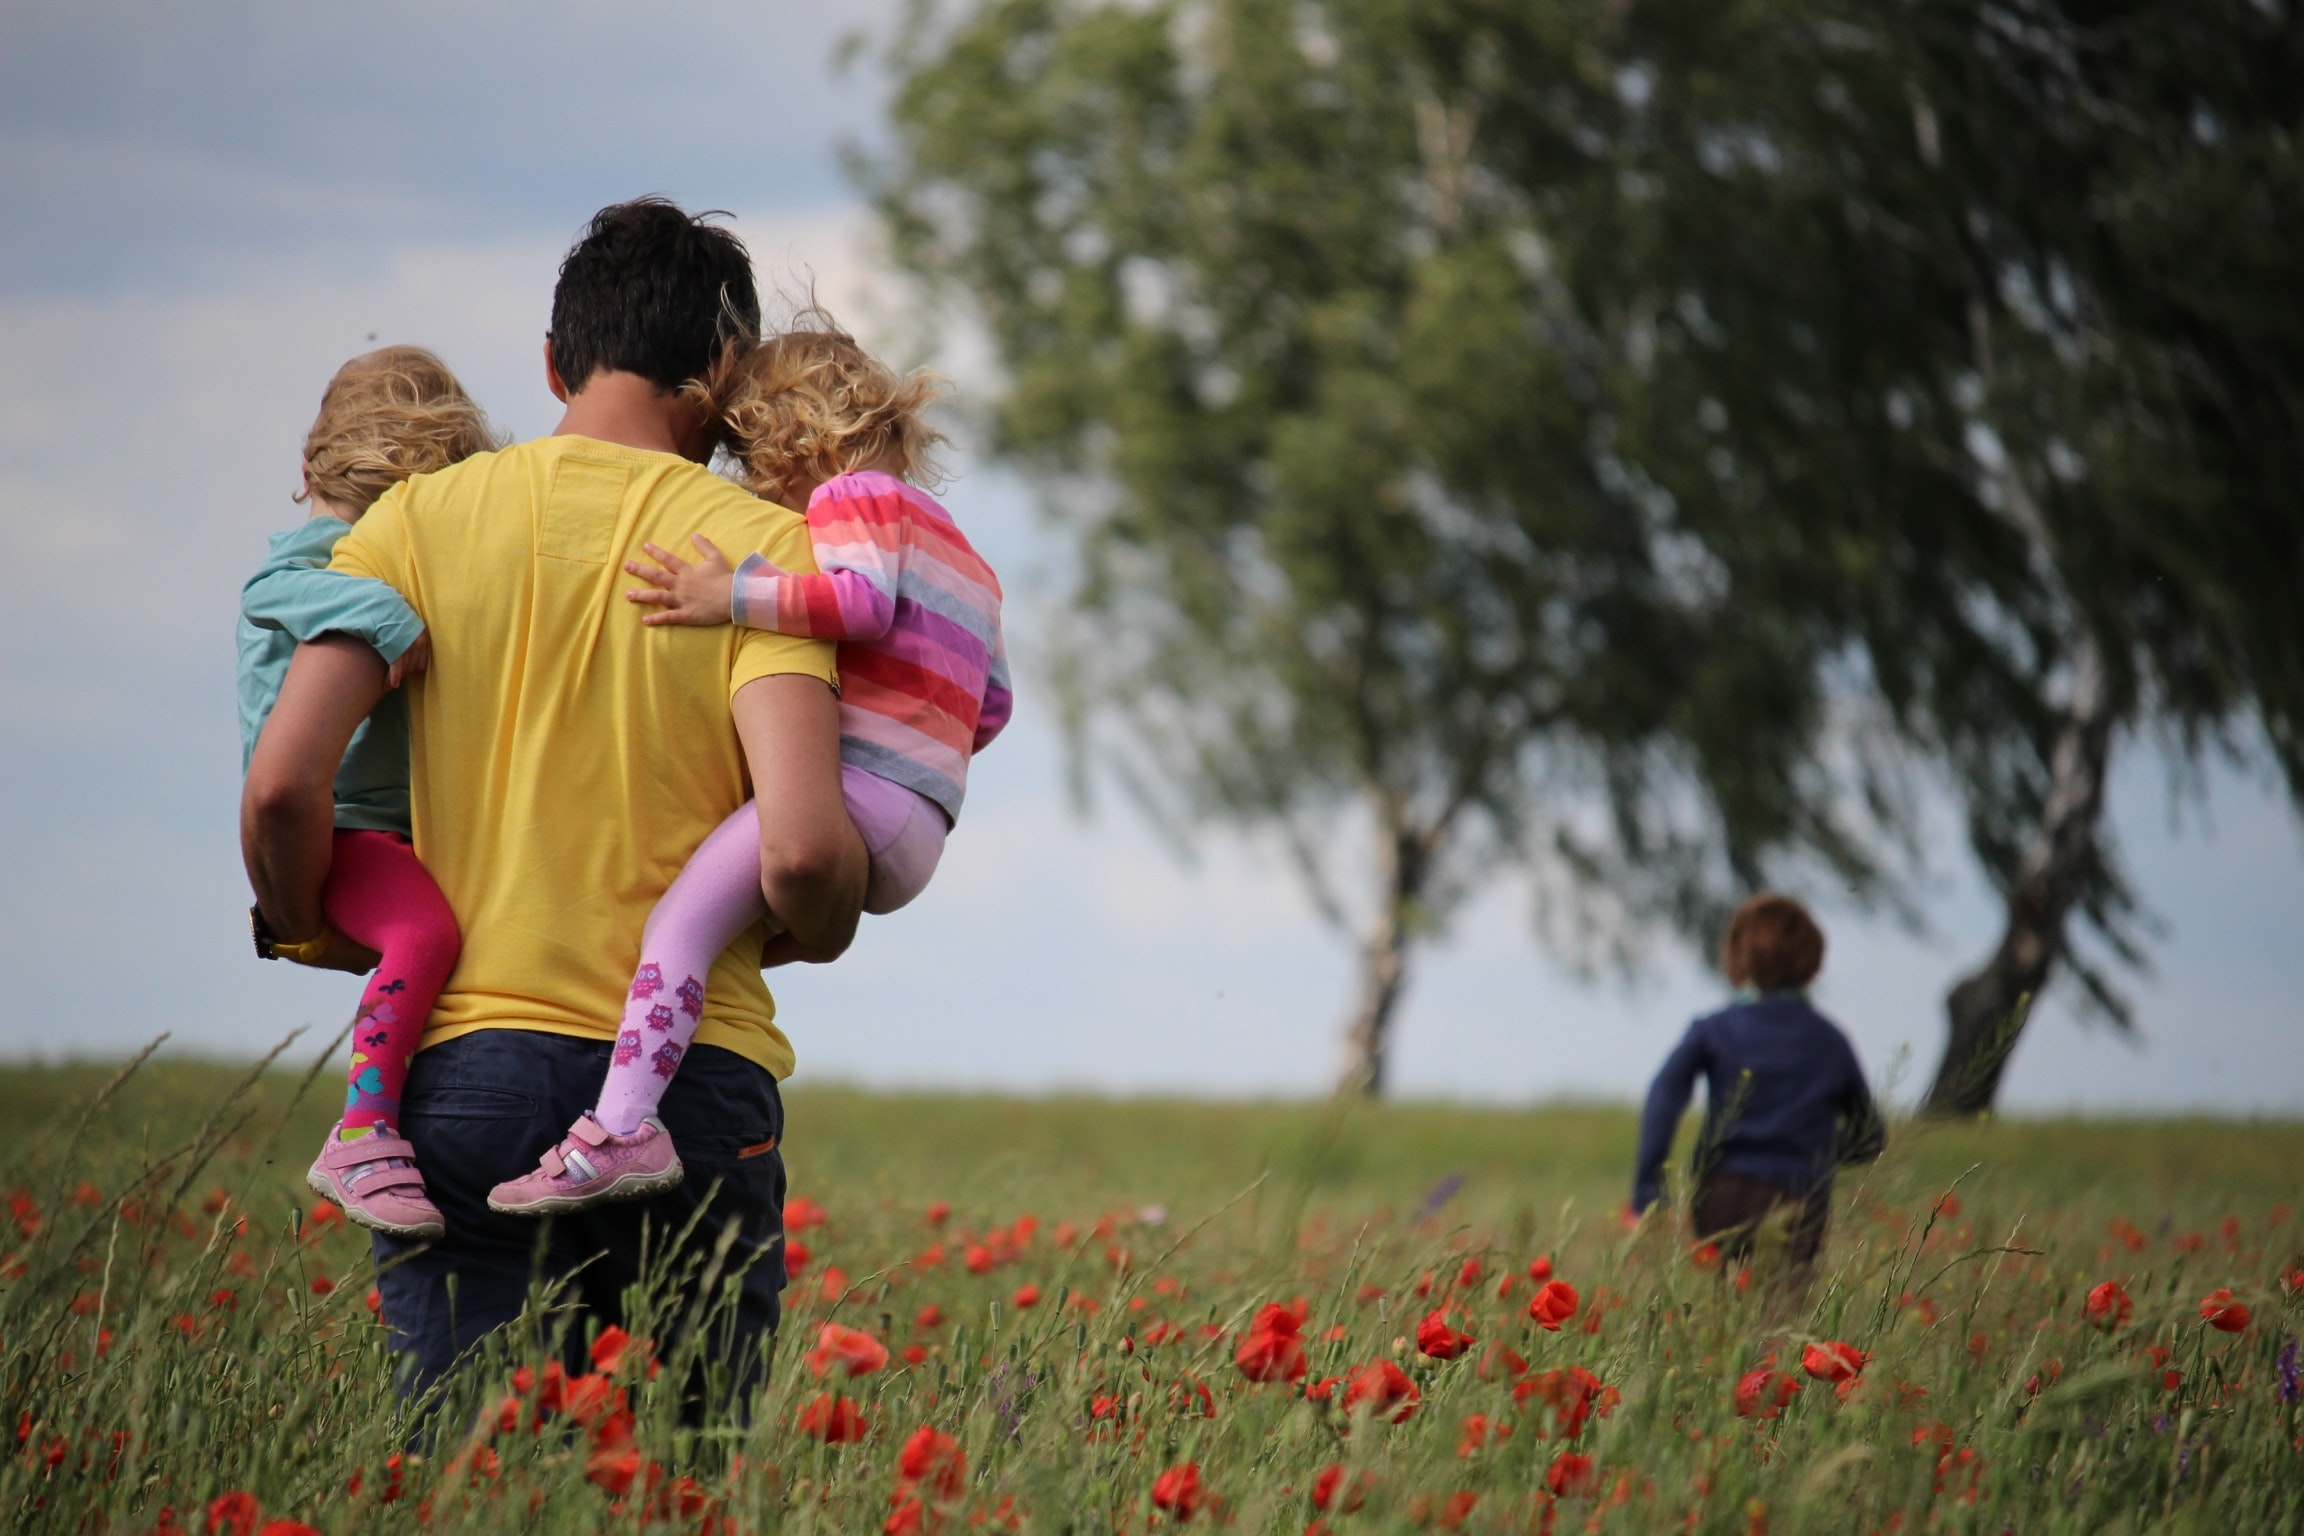 10 activities to celebrate Father's Day in your backyard